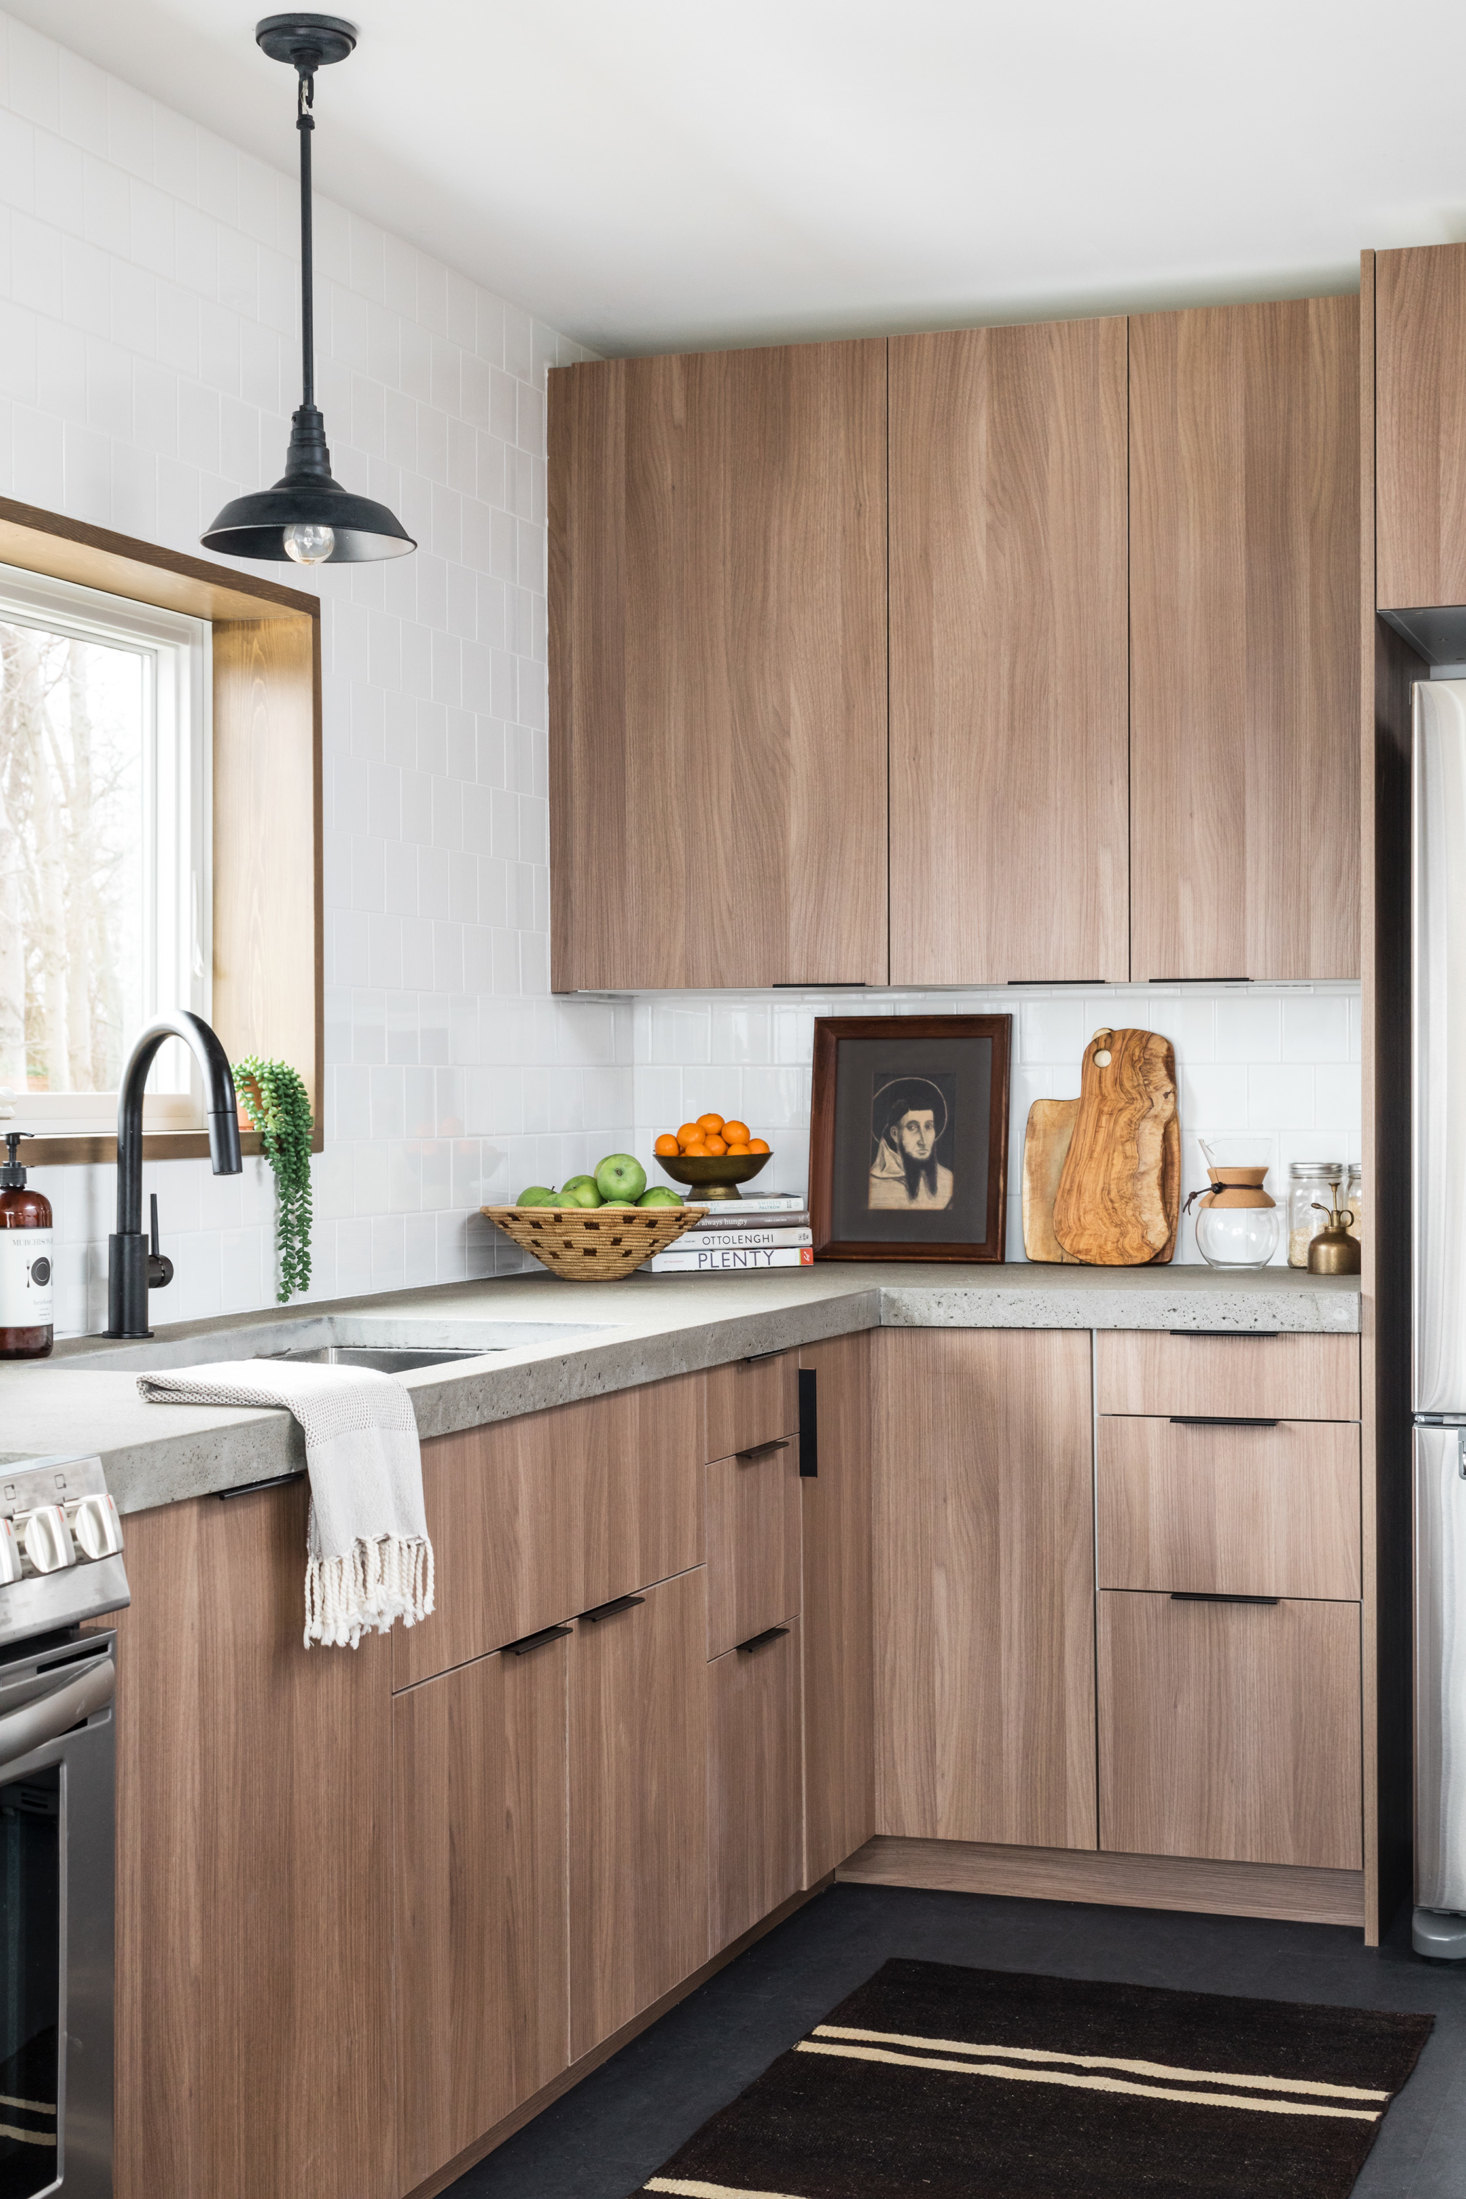 Ikea kitchen cabinetry everything you need to know and more